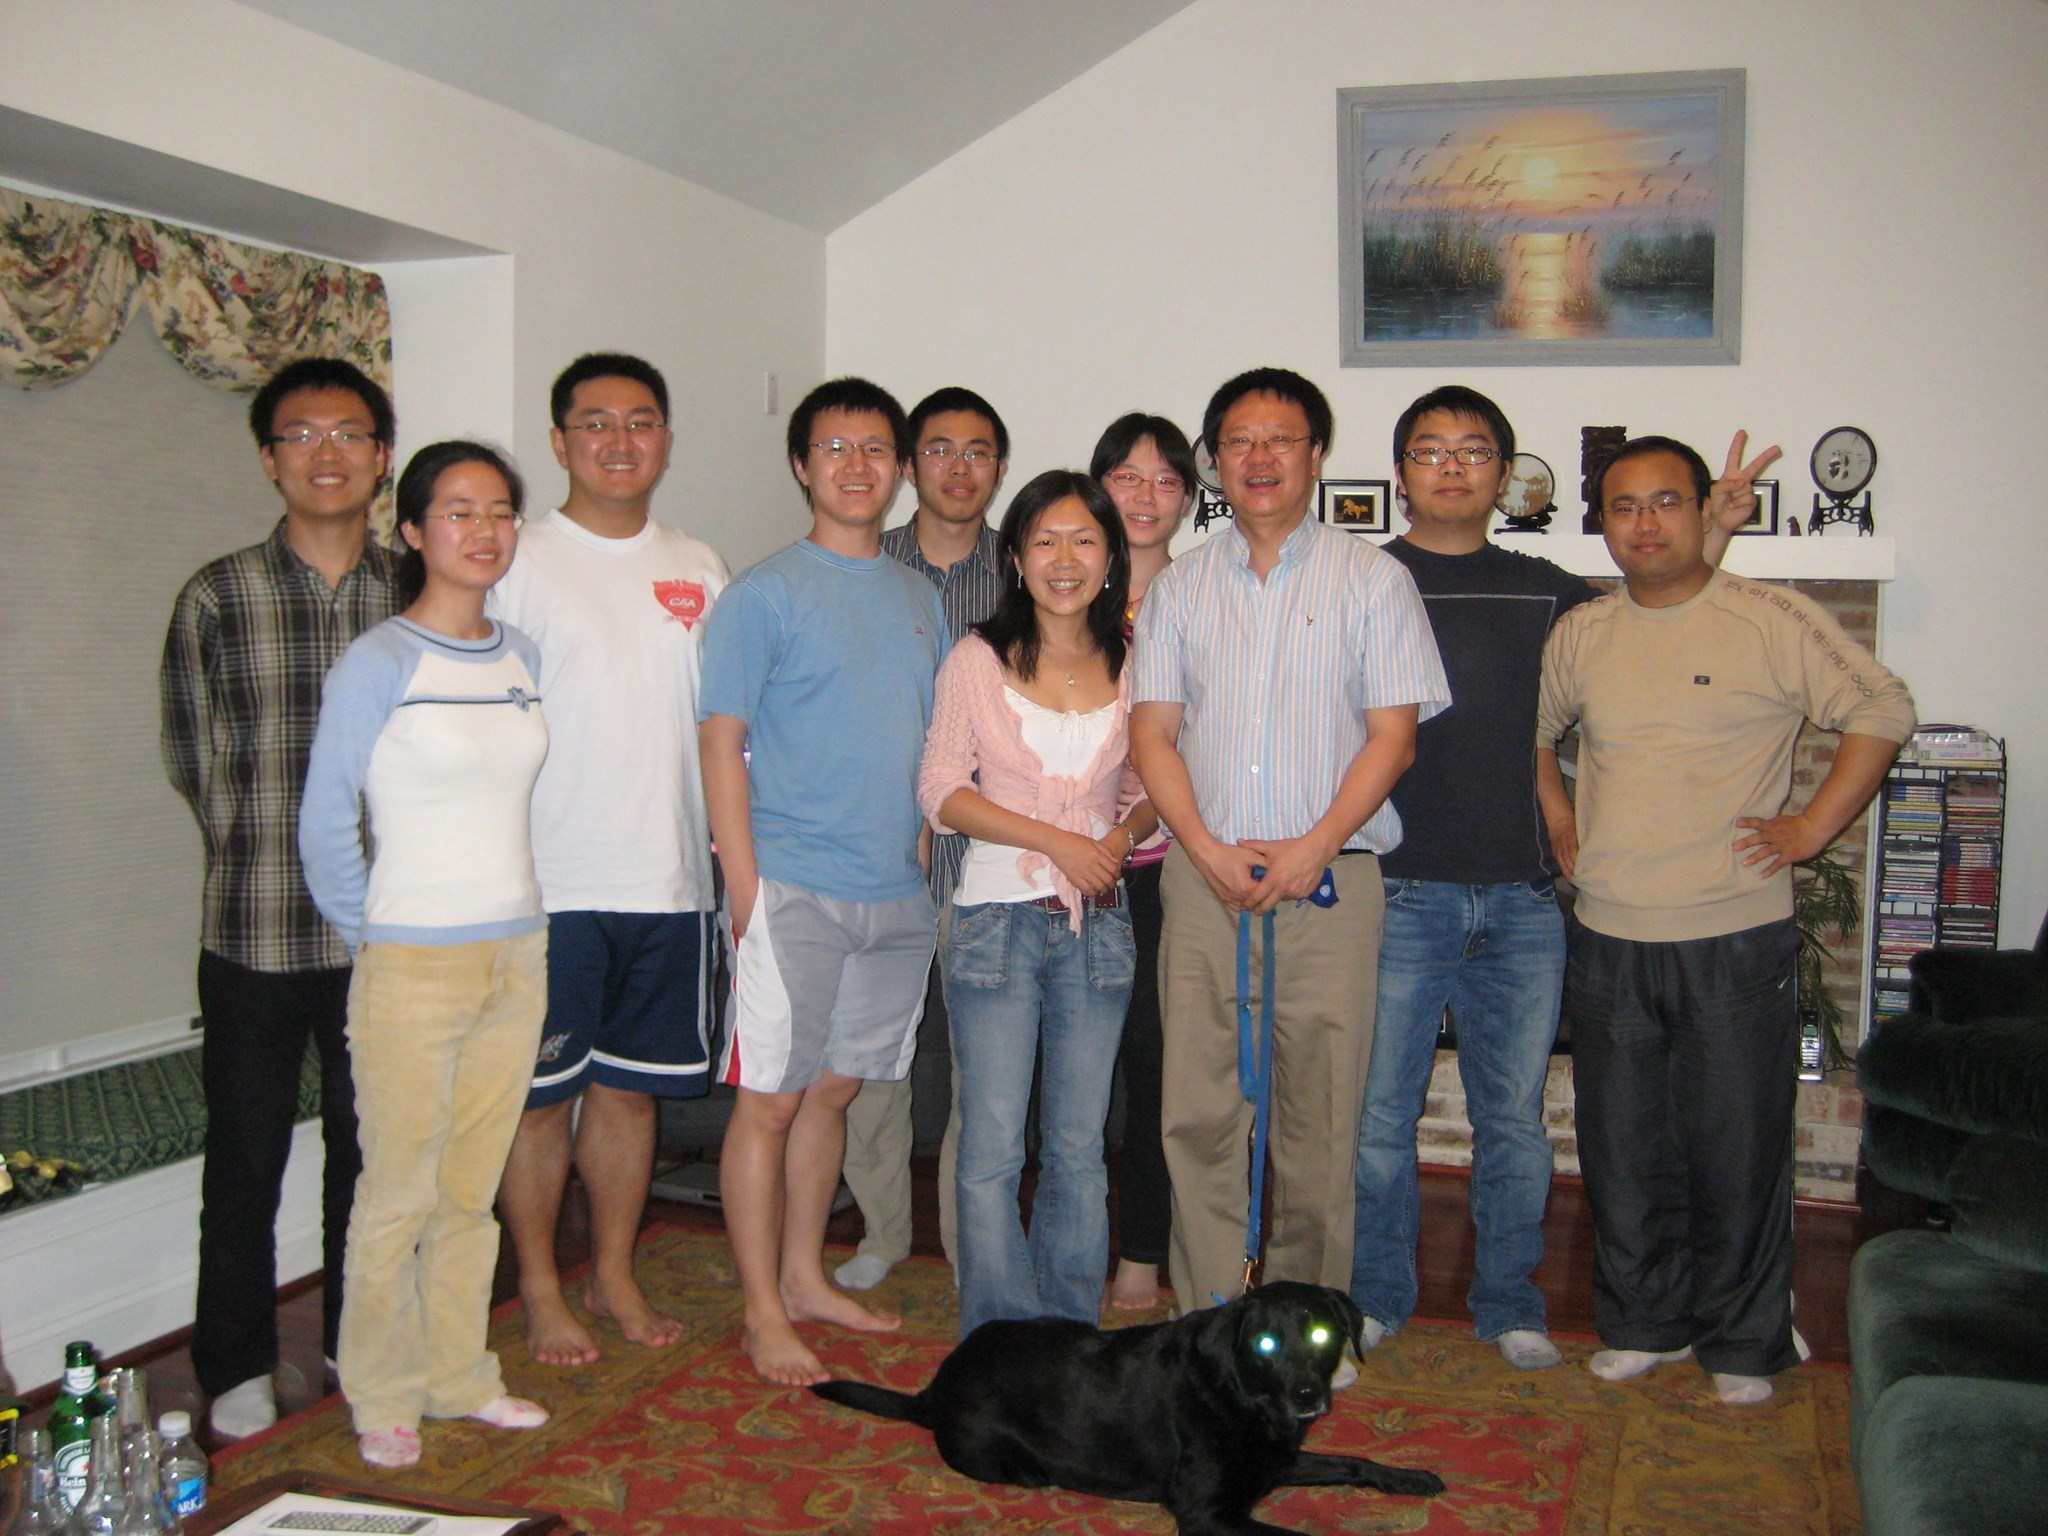 Dr. Li and students at his home